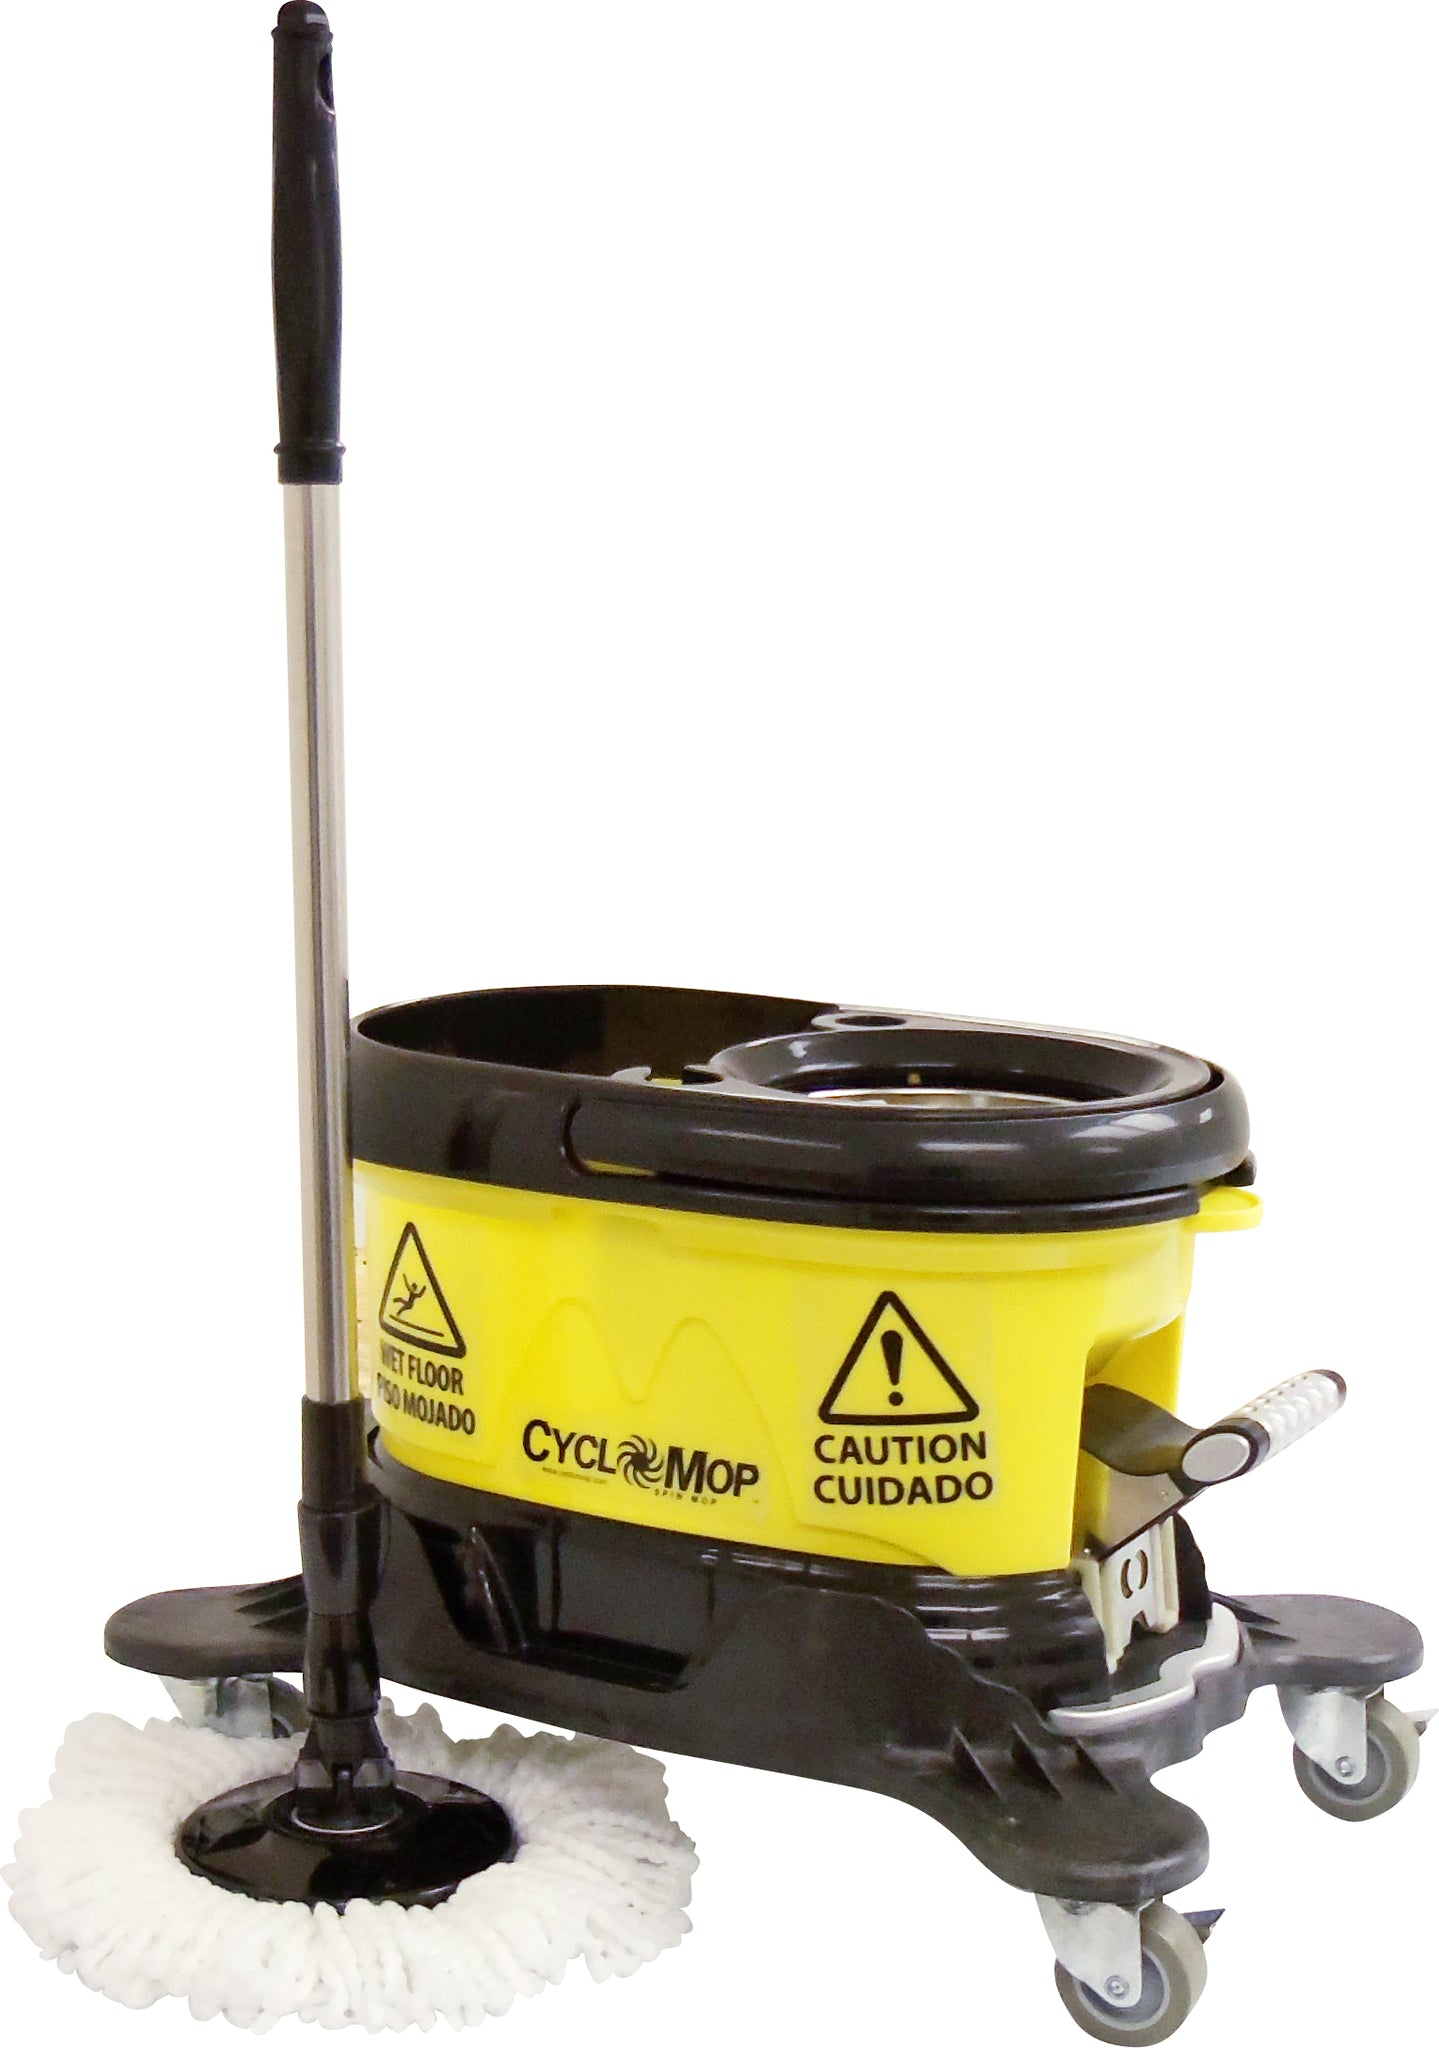 CYCLOMOP Commercial Spin Mop with Dolly Wheels